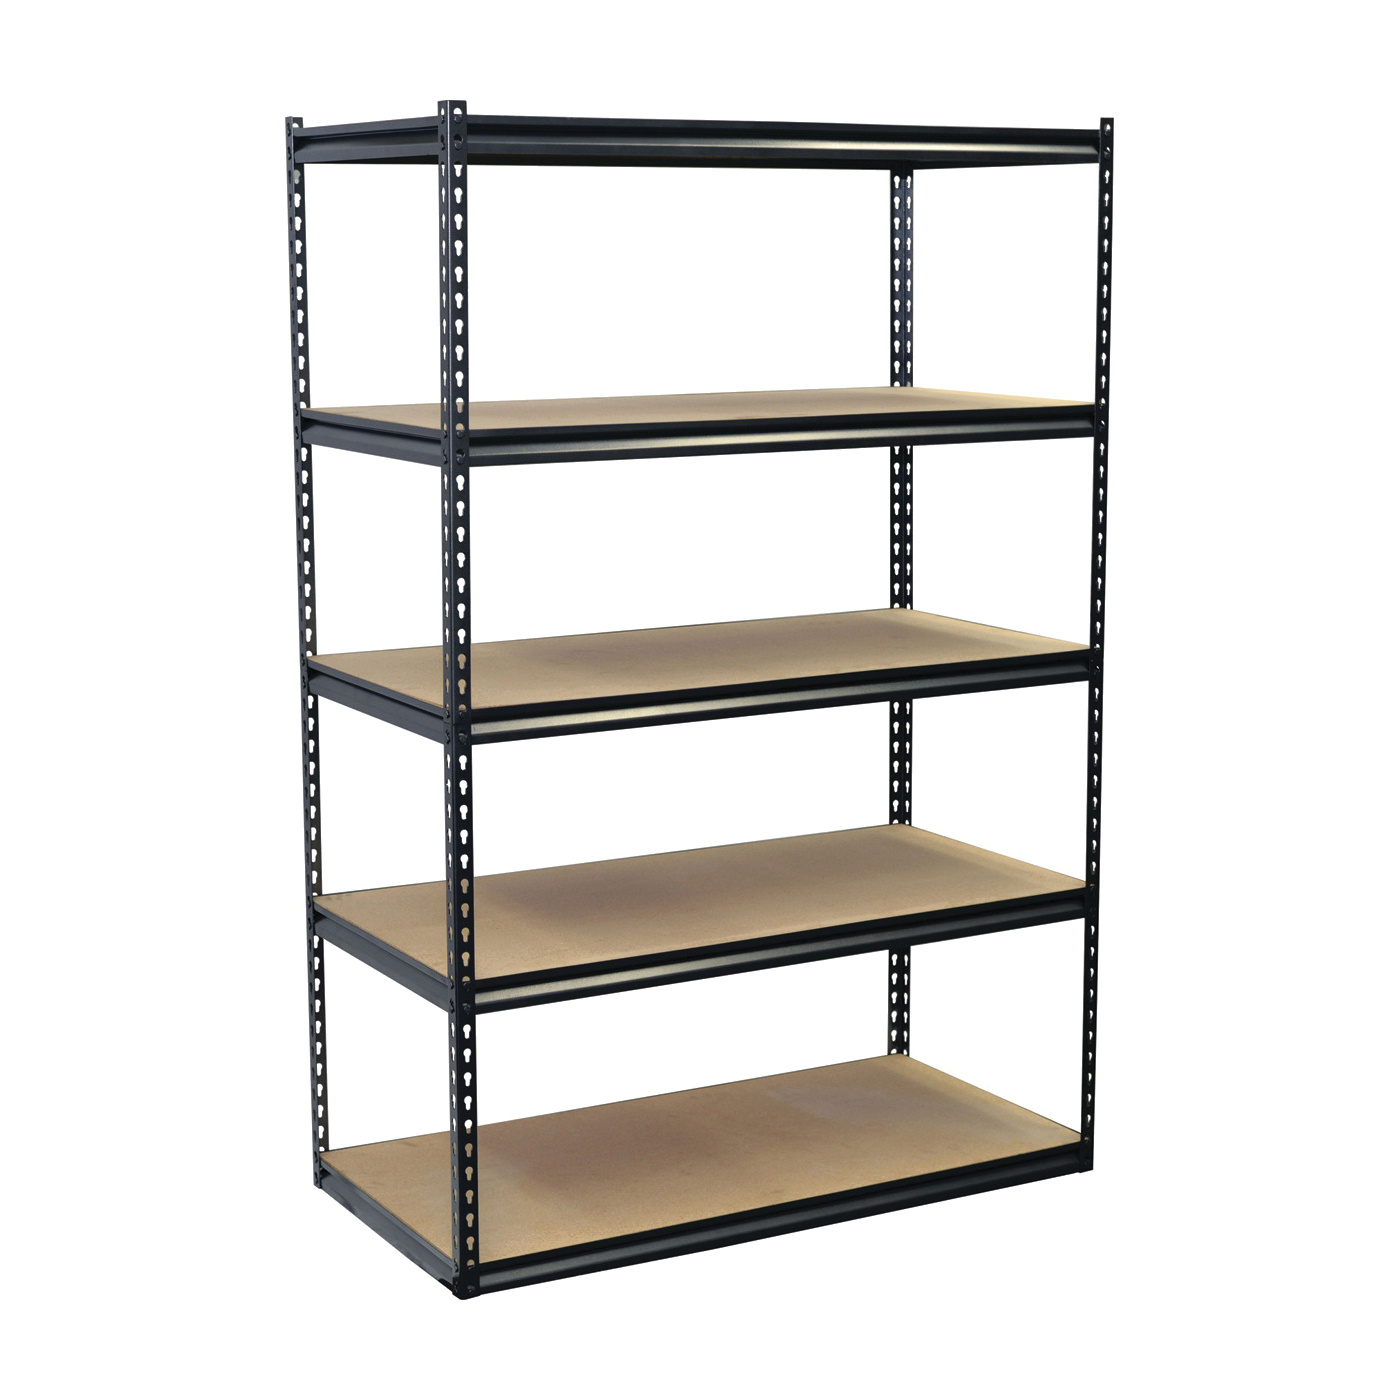 Picture of Storage Concepts SCB2505W Boltless Shelving Unit, 4000 lb Capacity, 5-Shelf, 48 in OAW, 24 in OAD, 72 in OAH